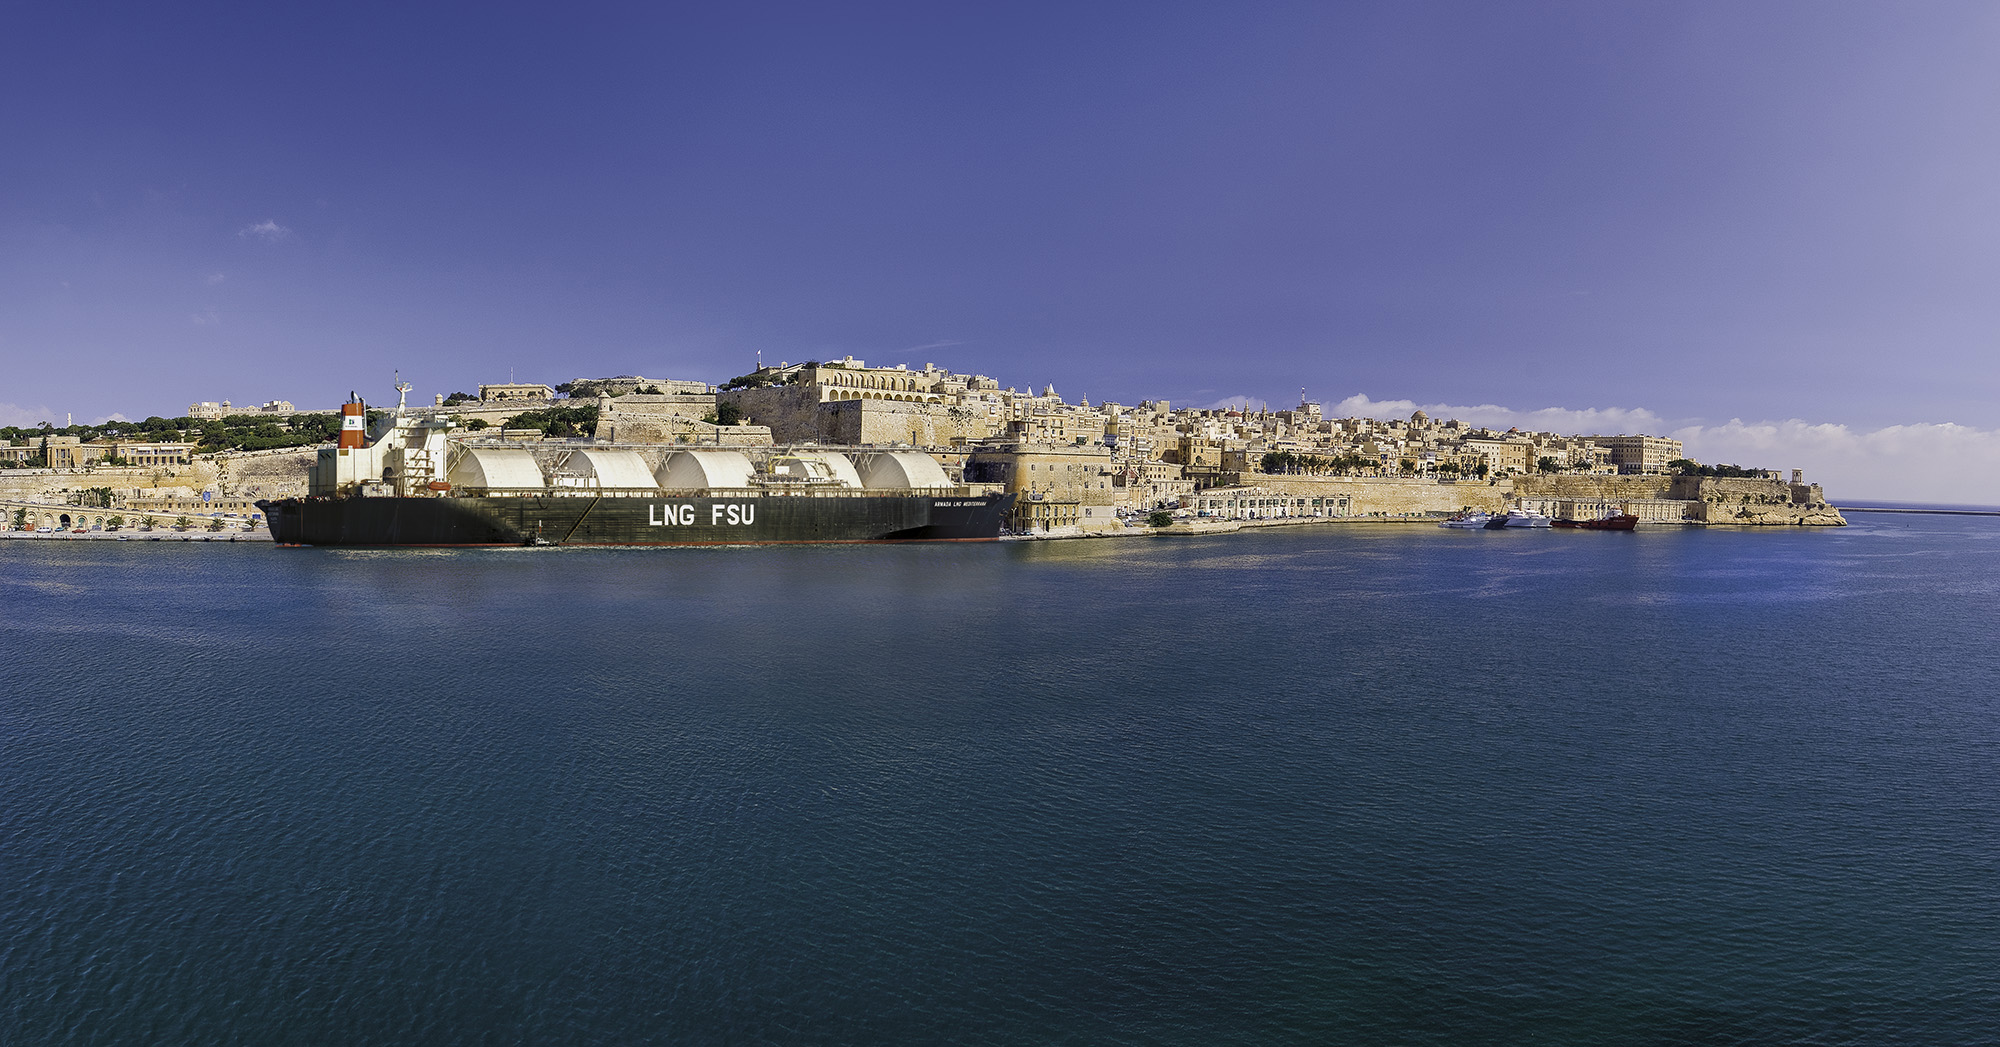 valletta-with-lng-tanker